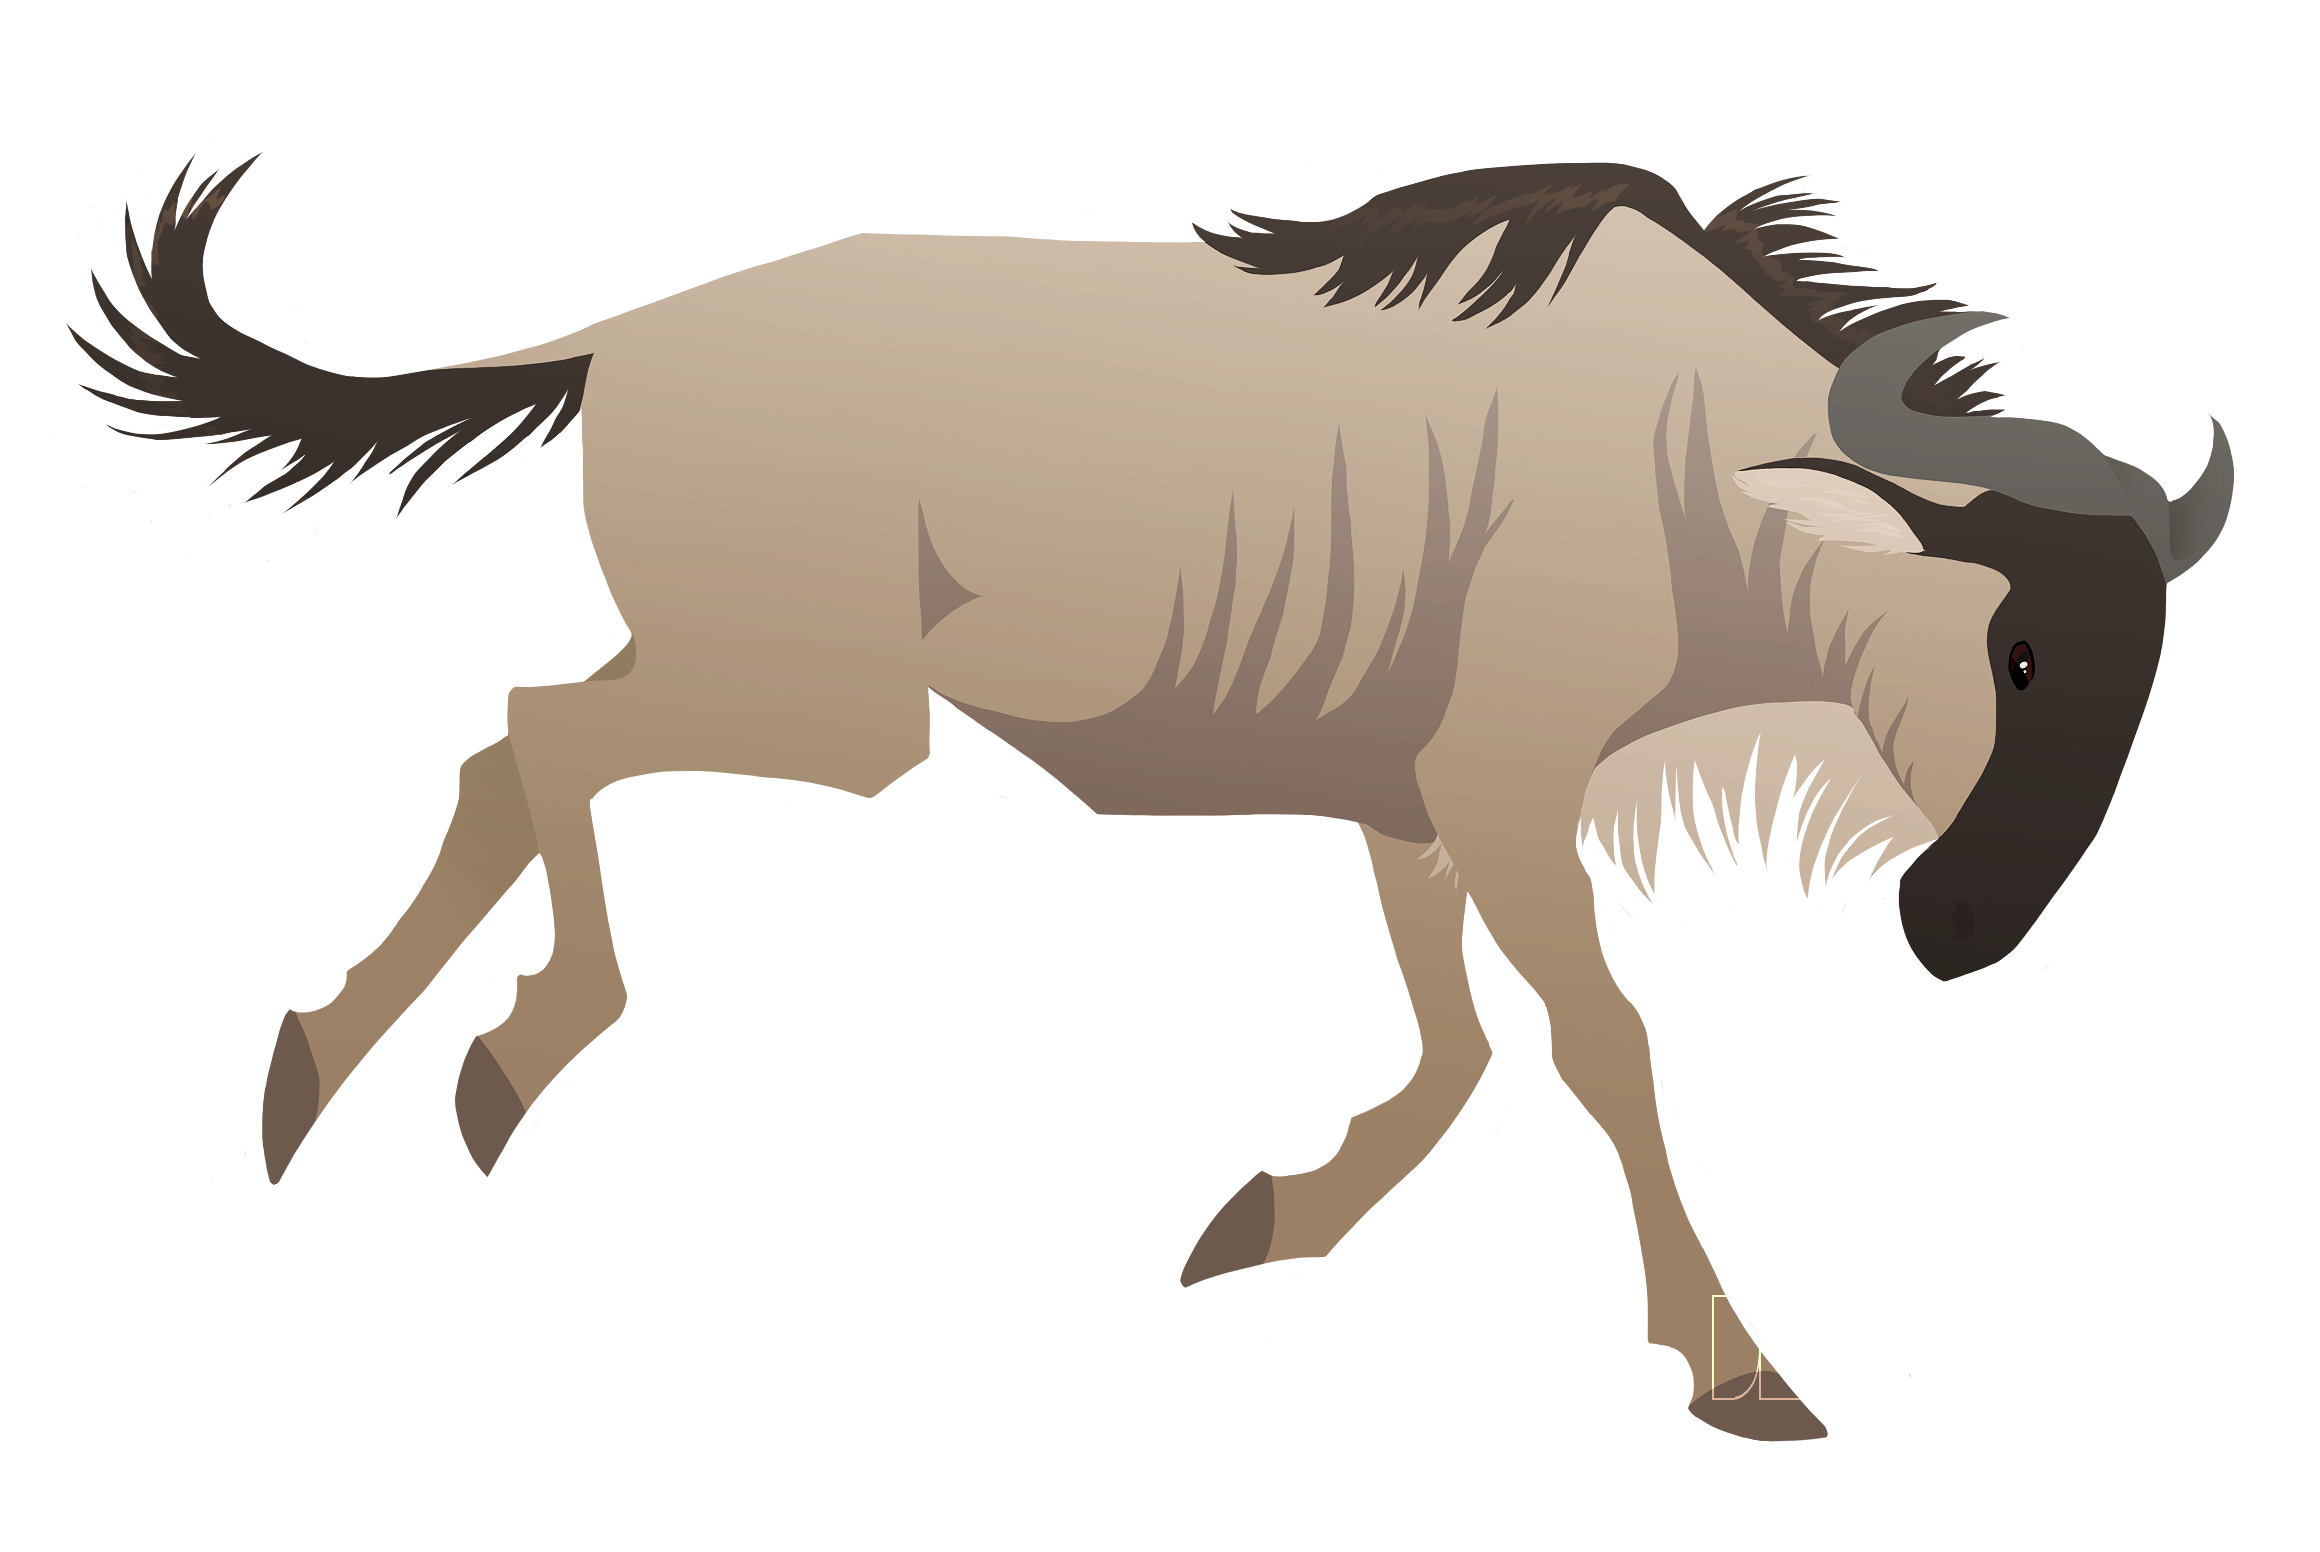 Wildebeest clipart #1, Download drawings